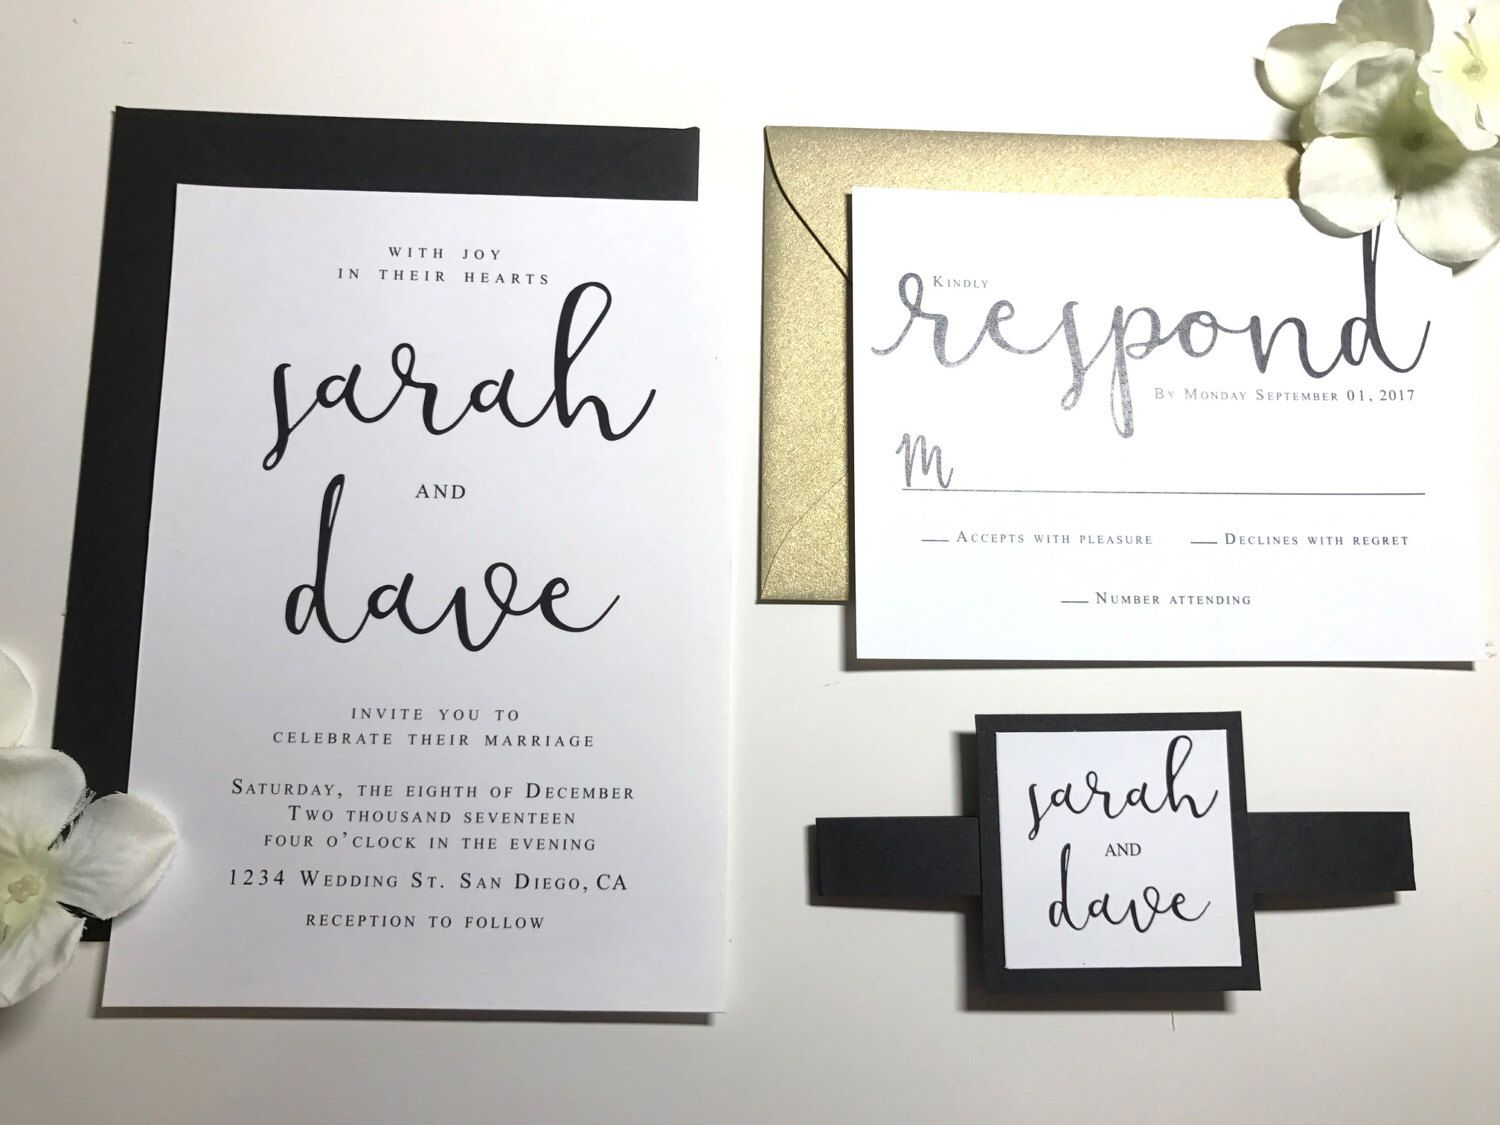 white and gold wedding invitations%0A Gold and Black Modern Calligraphy Wedding invitations Black  Classic Flowy  Script Font  Beautiful Elegant